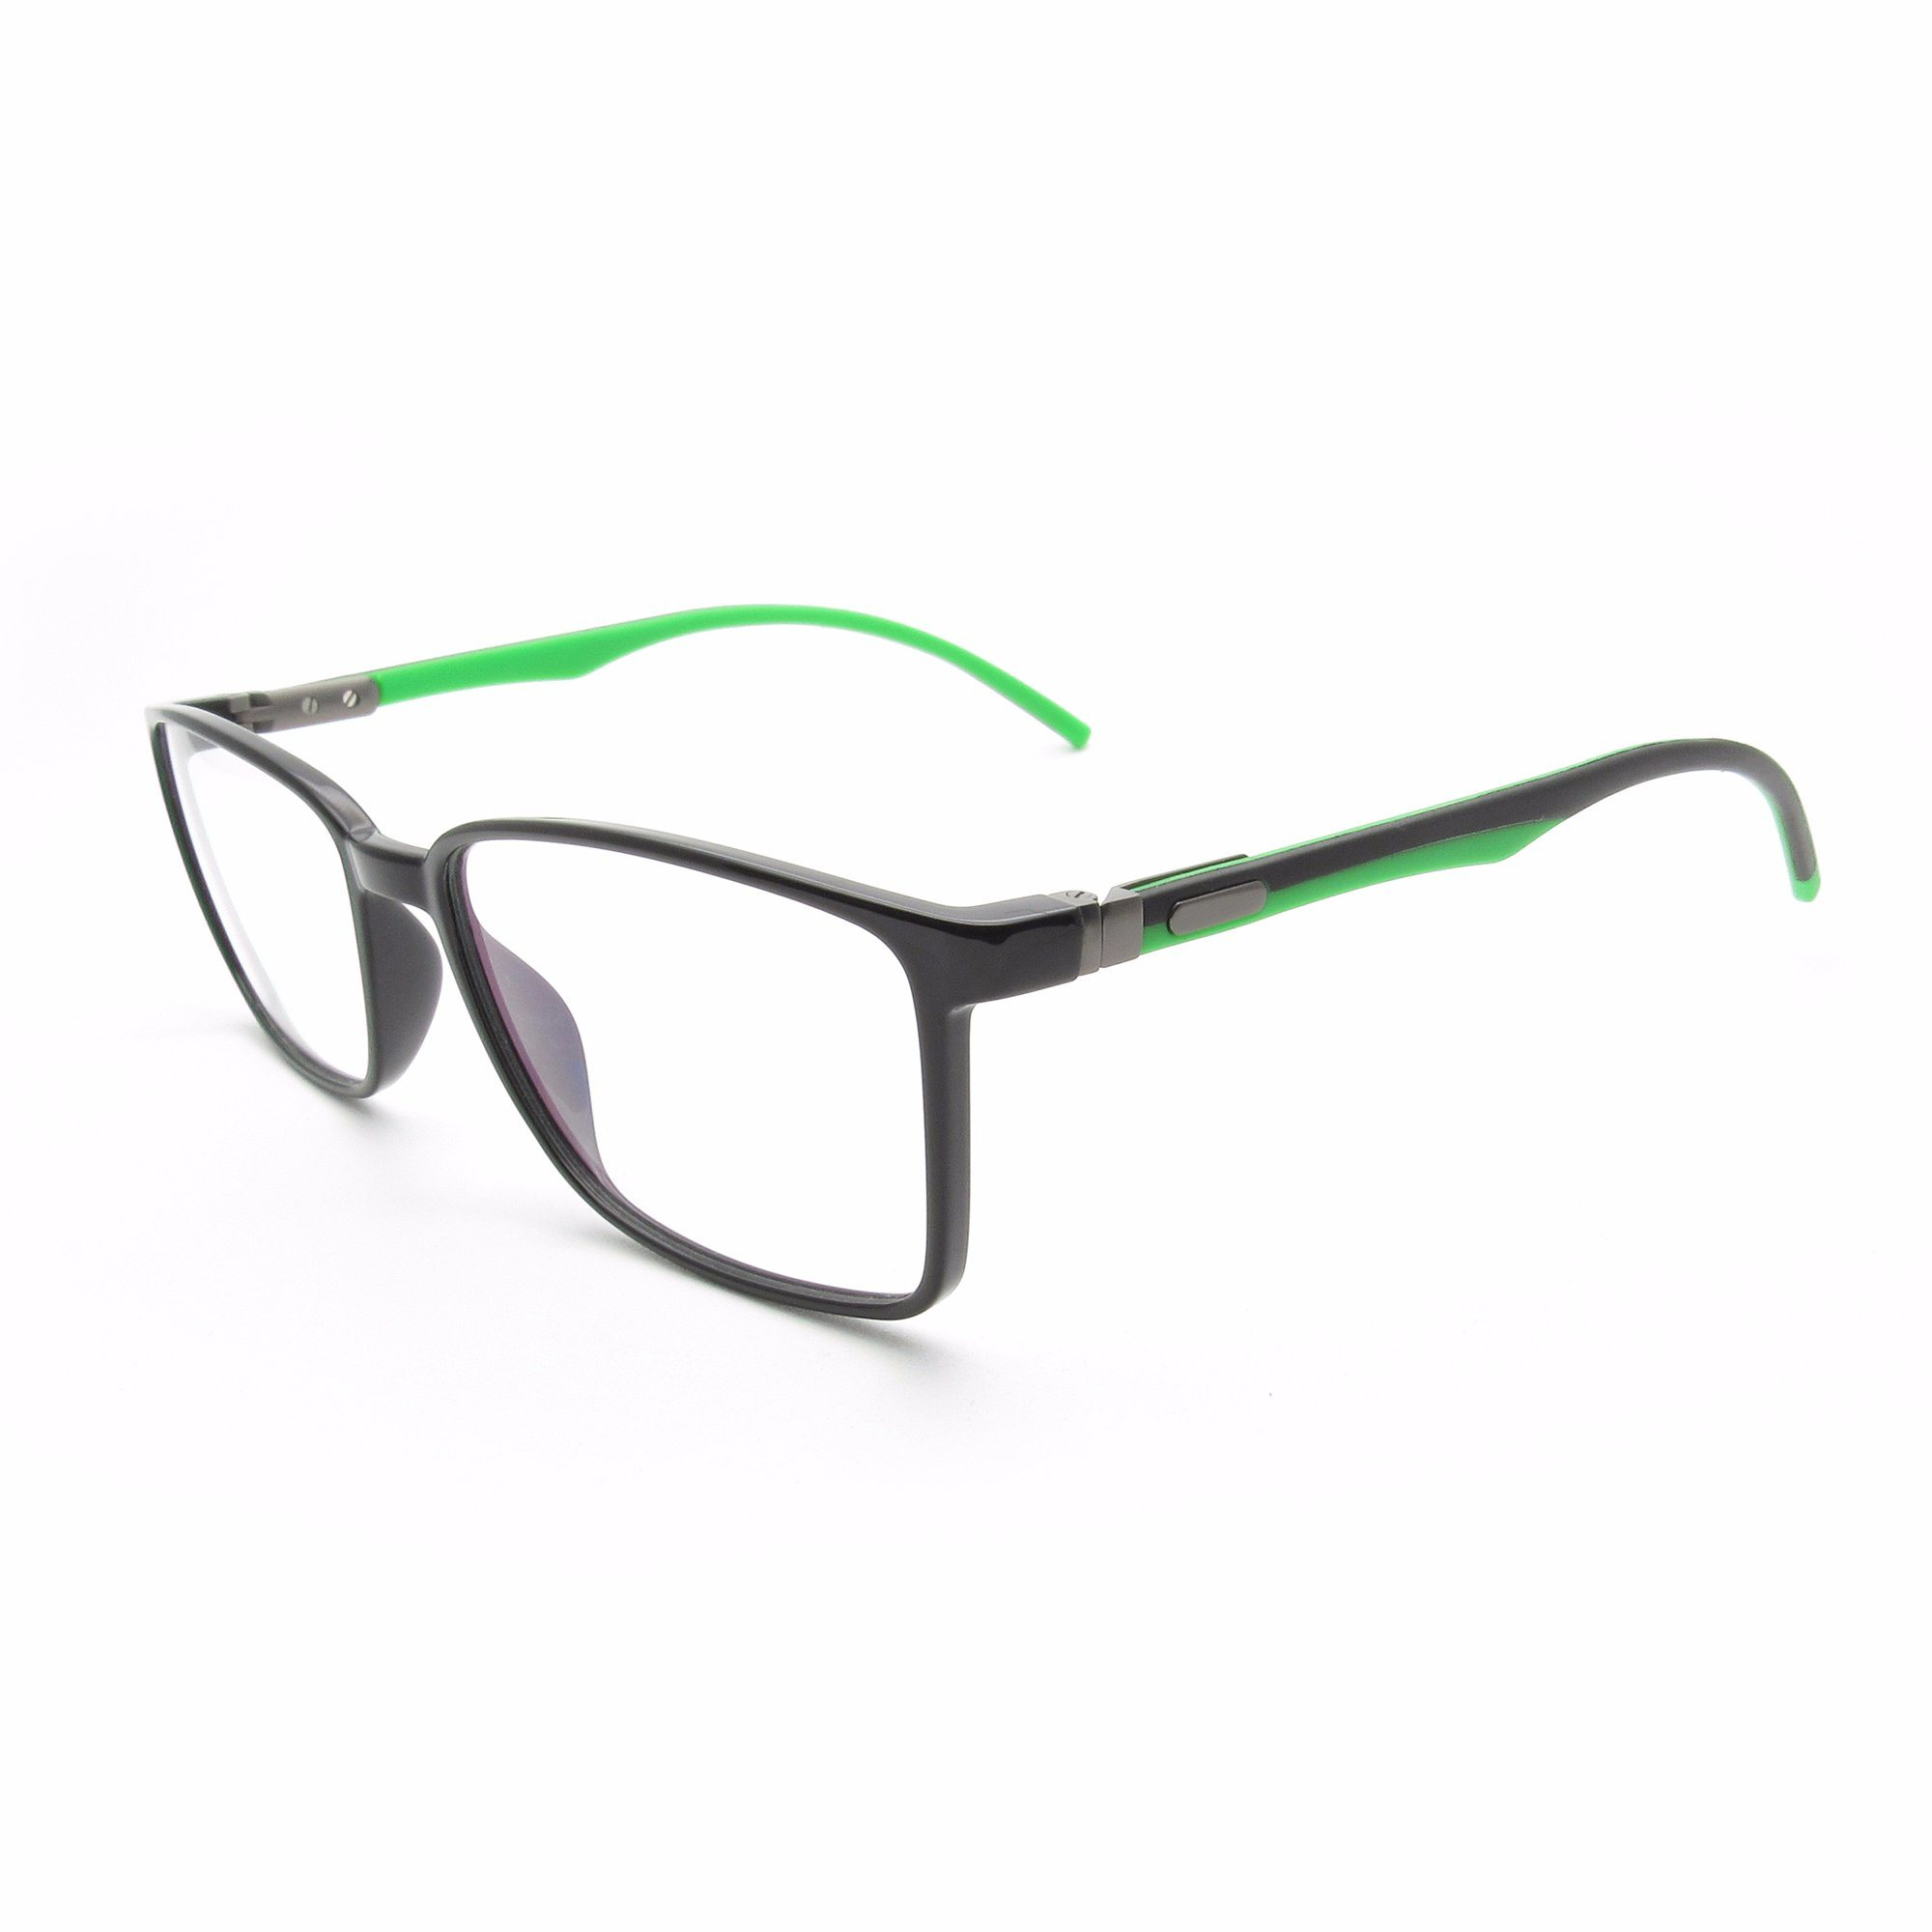 757457e889 China new model most popular simple modern glasses frame china modern  glasses frame popular glasses frame